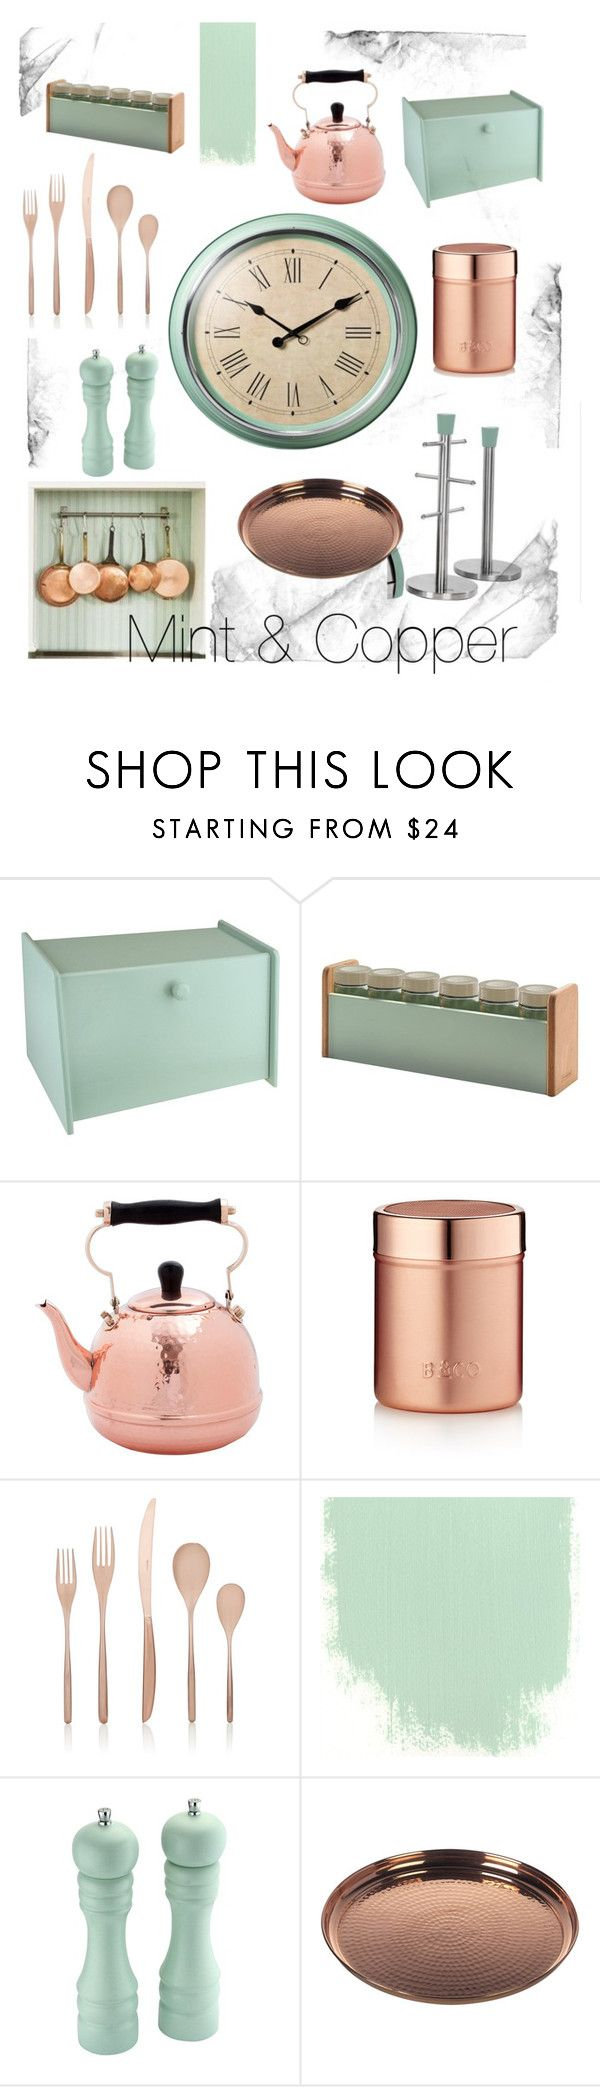 """Mint & Copper Kitchen"" by rosalyn-potts on Polyvore featuring interior, interiors, interior design, home, home decor, interior decorating, Typhoon, Old Dutch, Barista & Co and Sambonet"